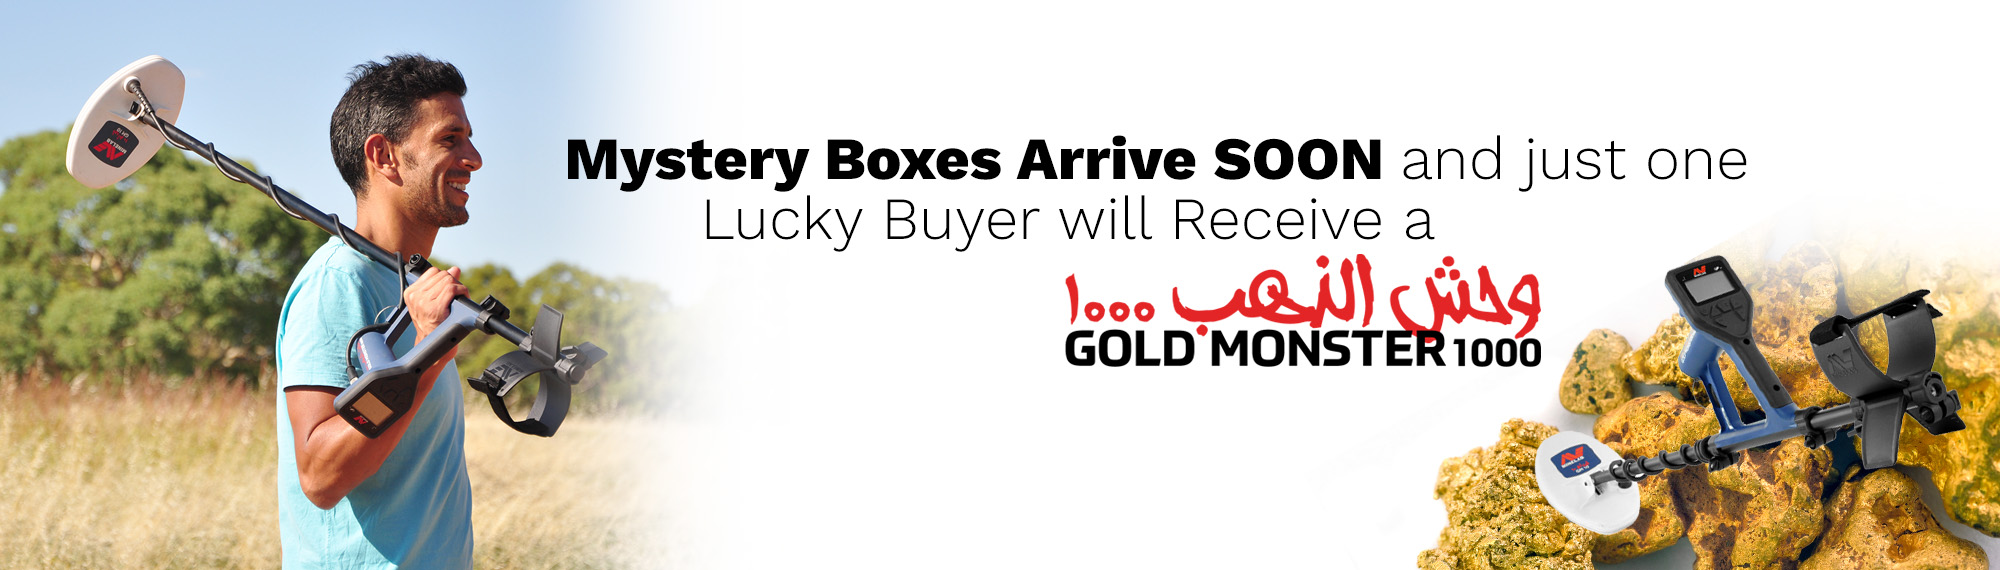 Mystery Boxes Arrive Soon and One Lucky Winner will Receive a Gold Monster 1000 with Gold Monster Metal Detector on top of Pile of Gold Nuggets and Man Holding Gold Monster on Left Side